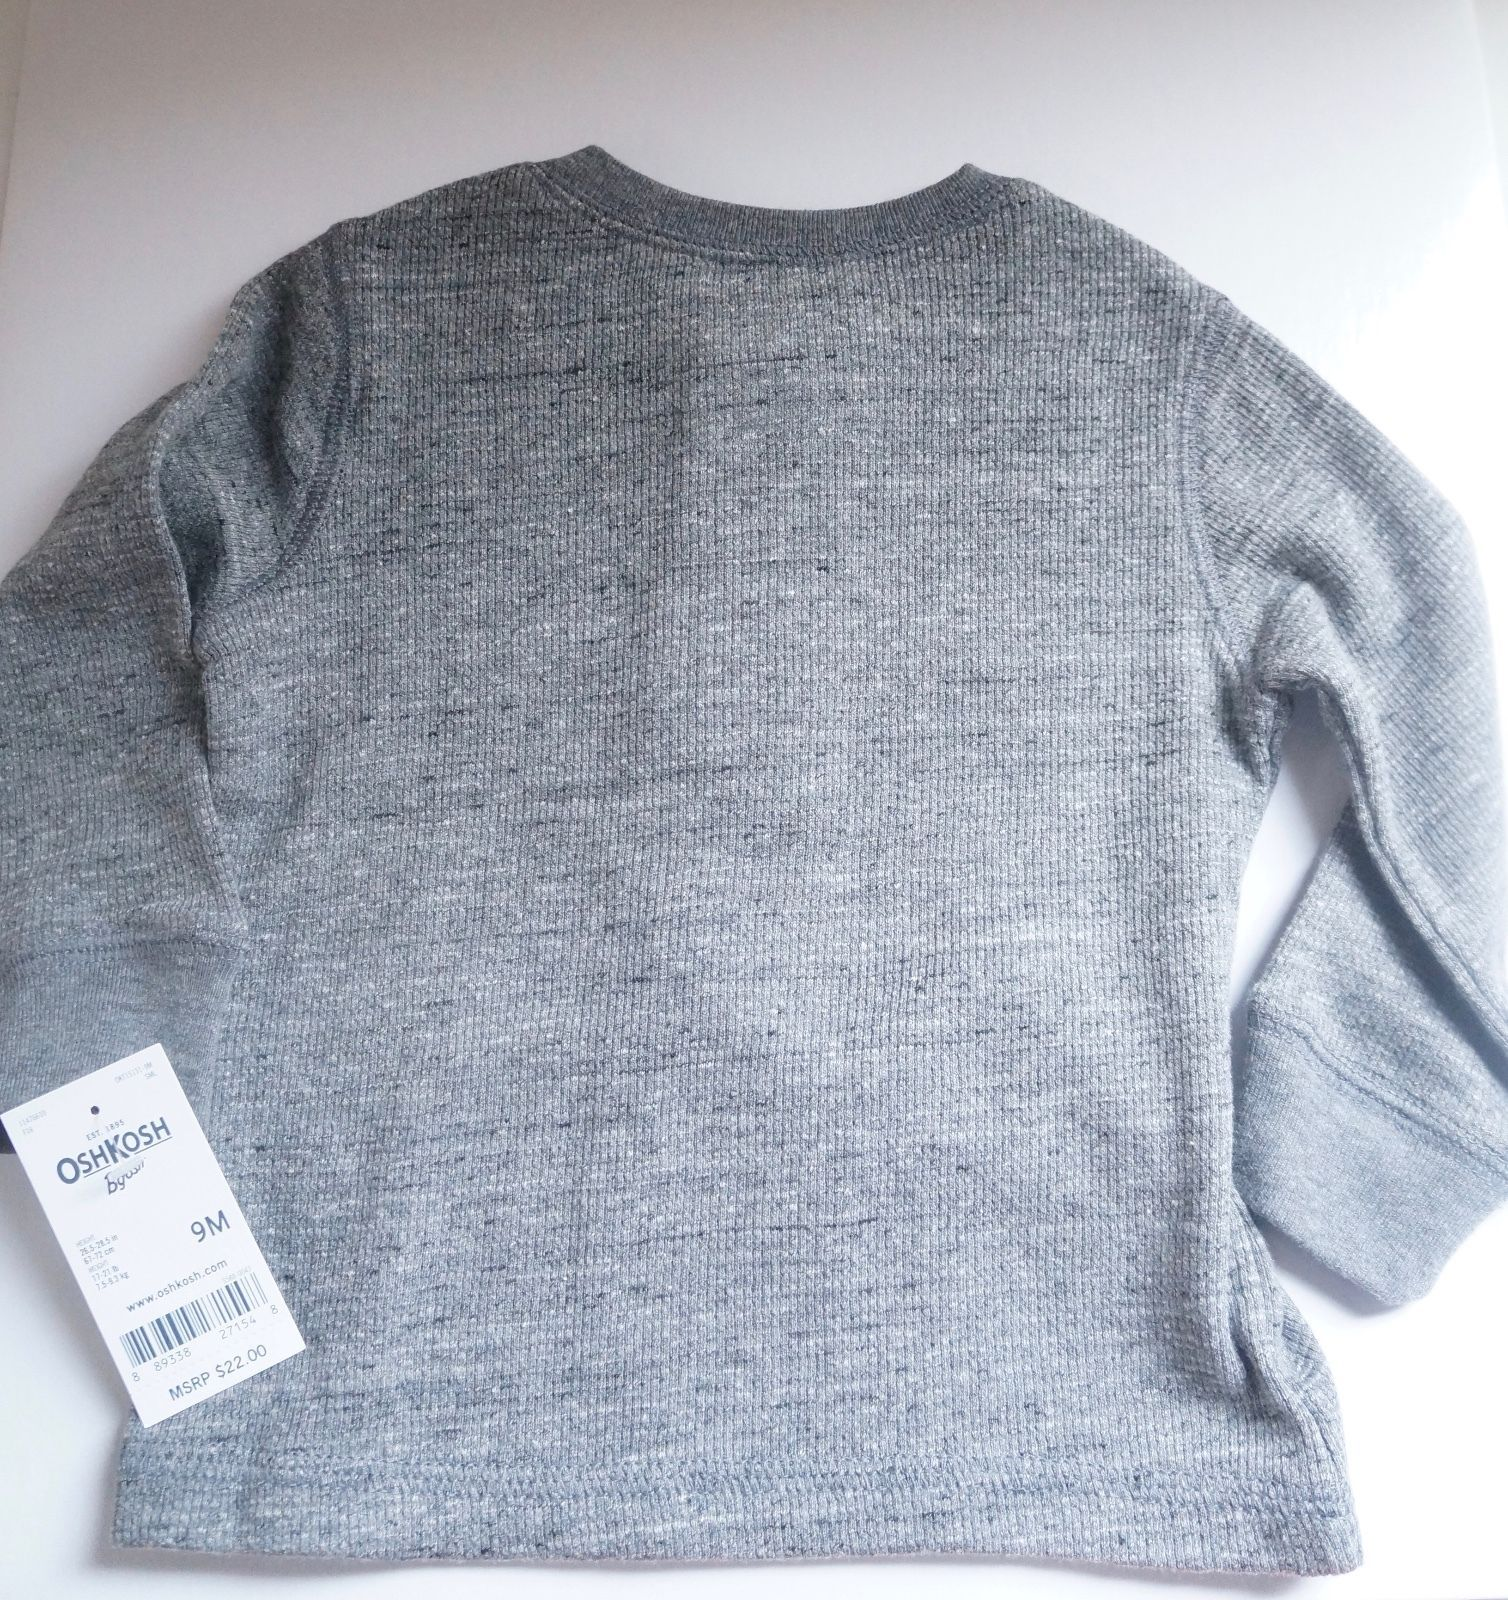 New Carter's Long Sleeve Pullover Shirt 9M